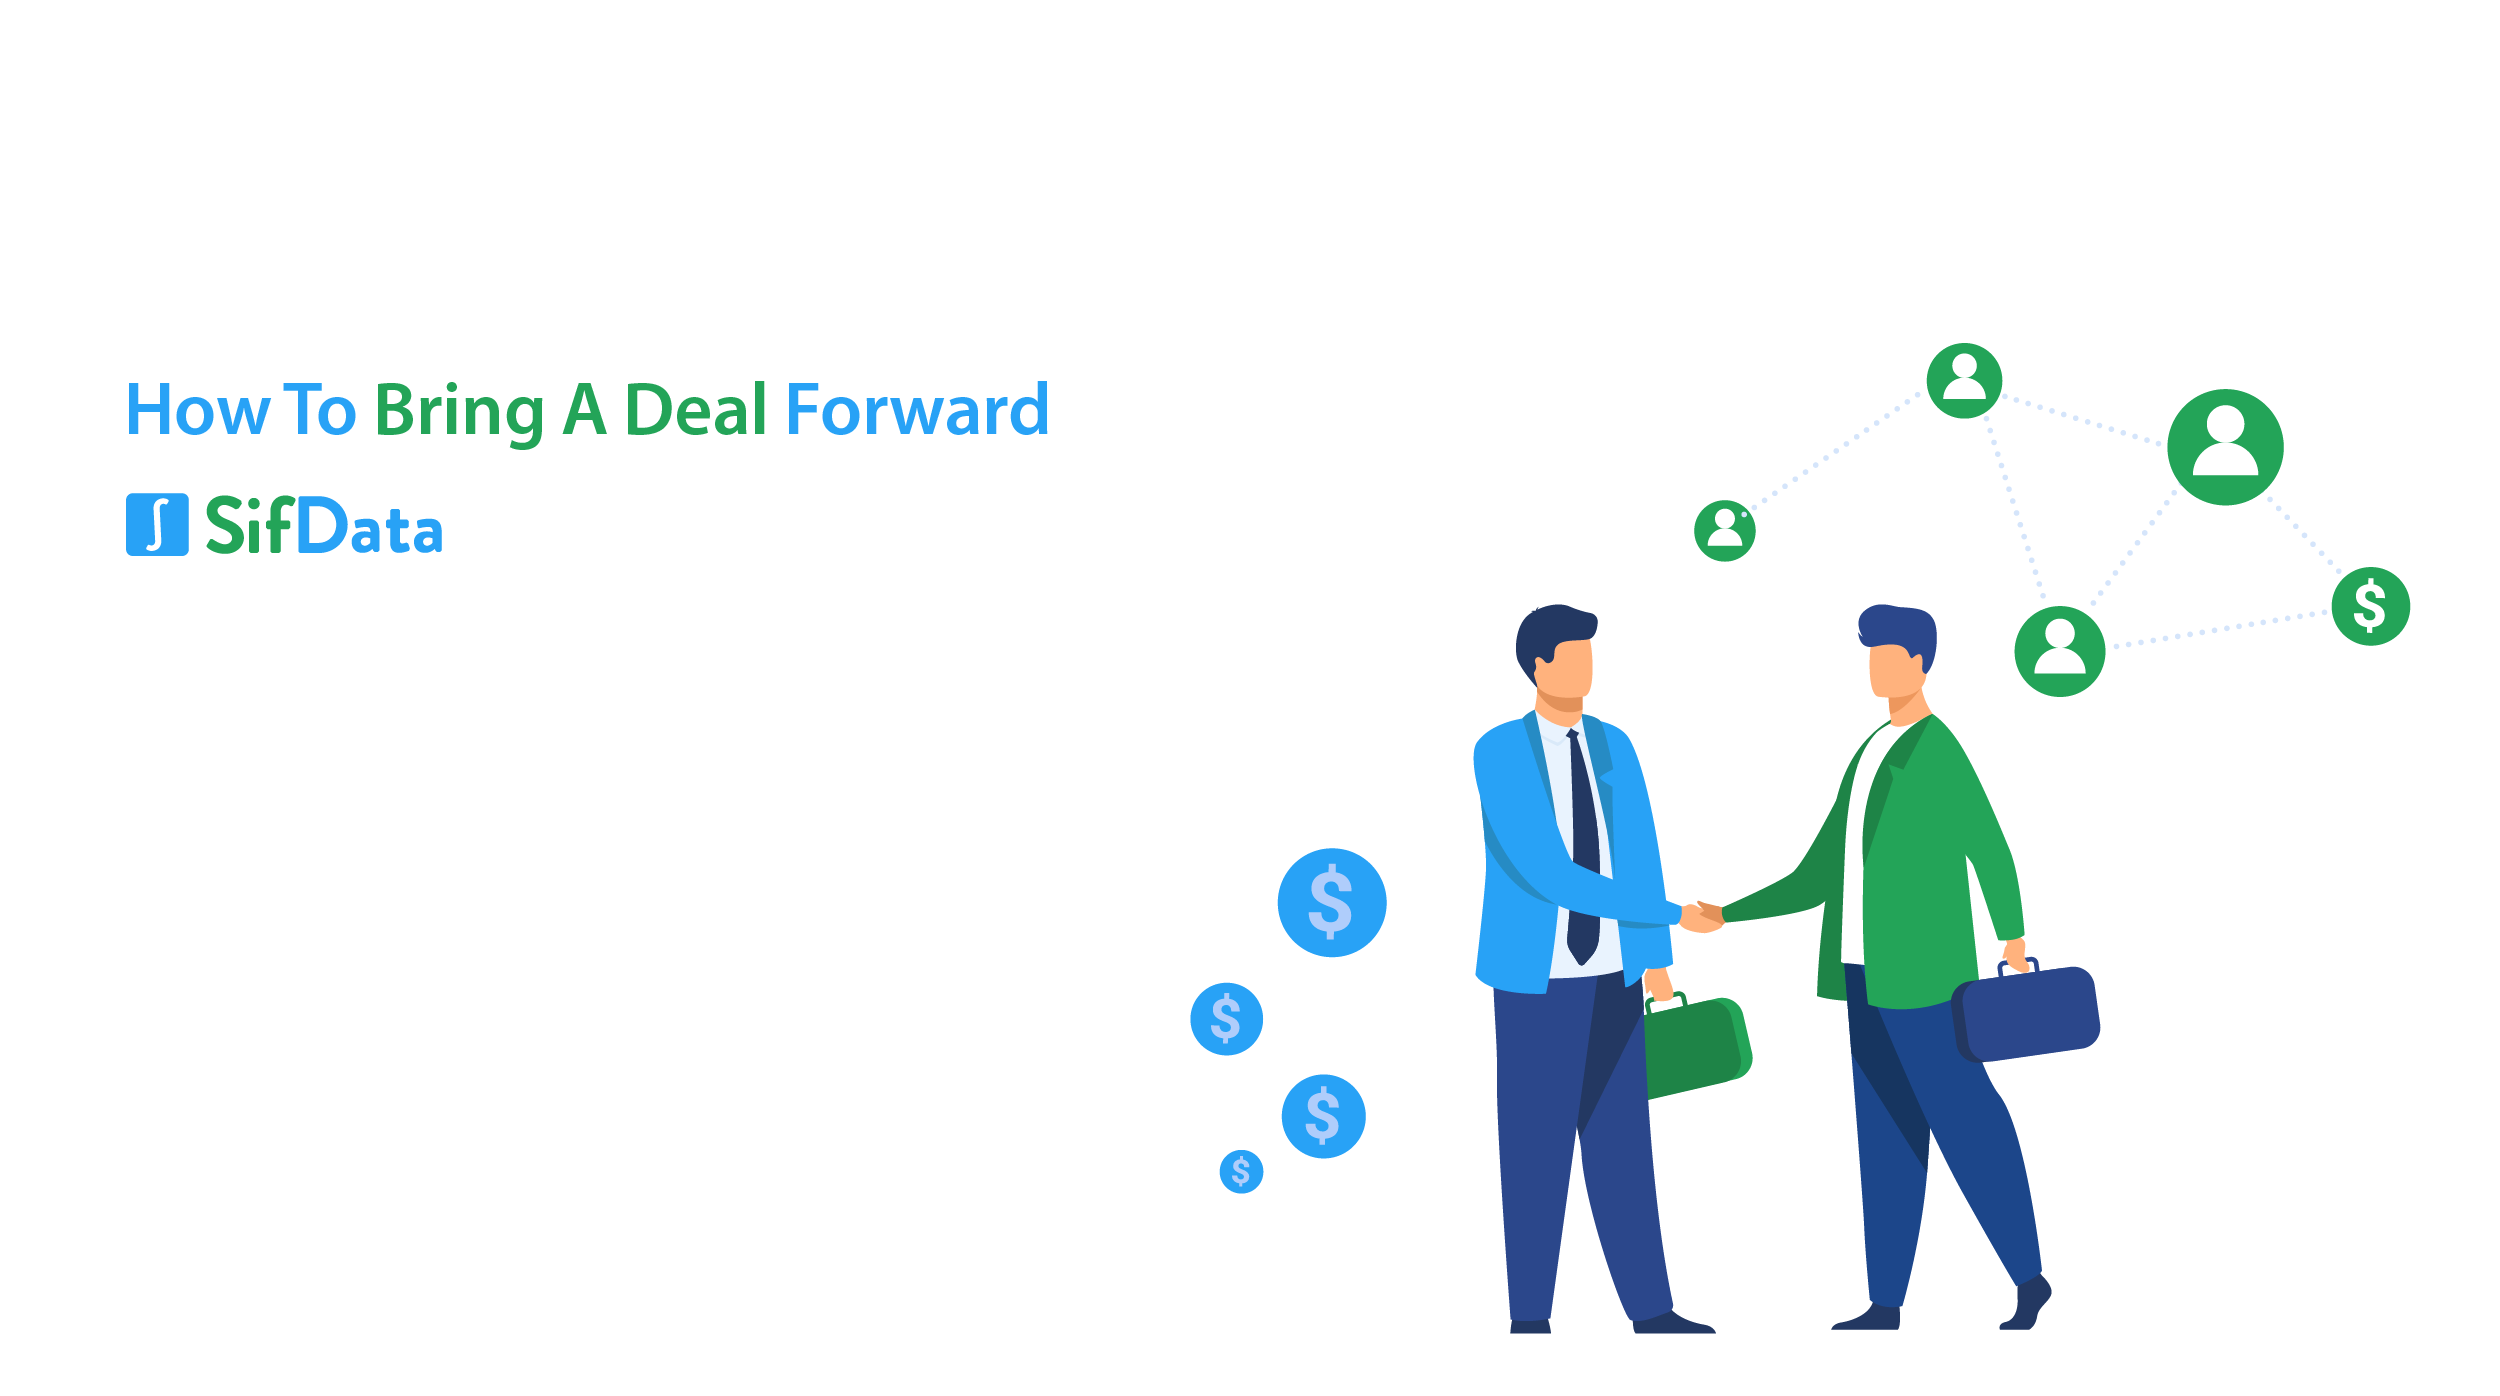 HOW TO BRING A DEAL FORWARD